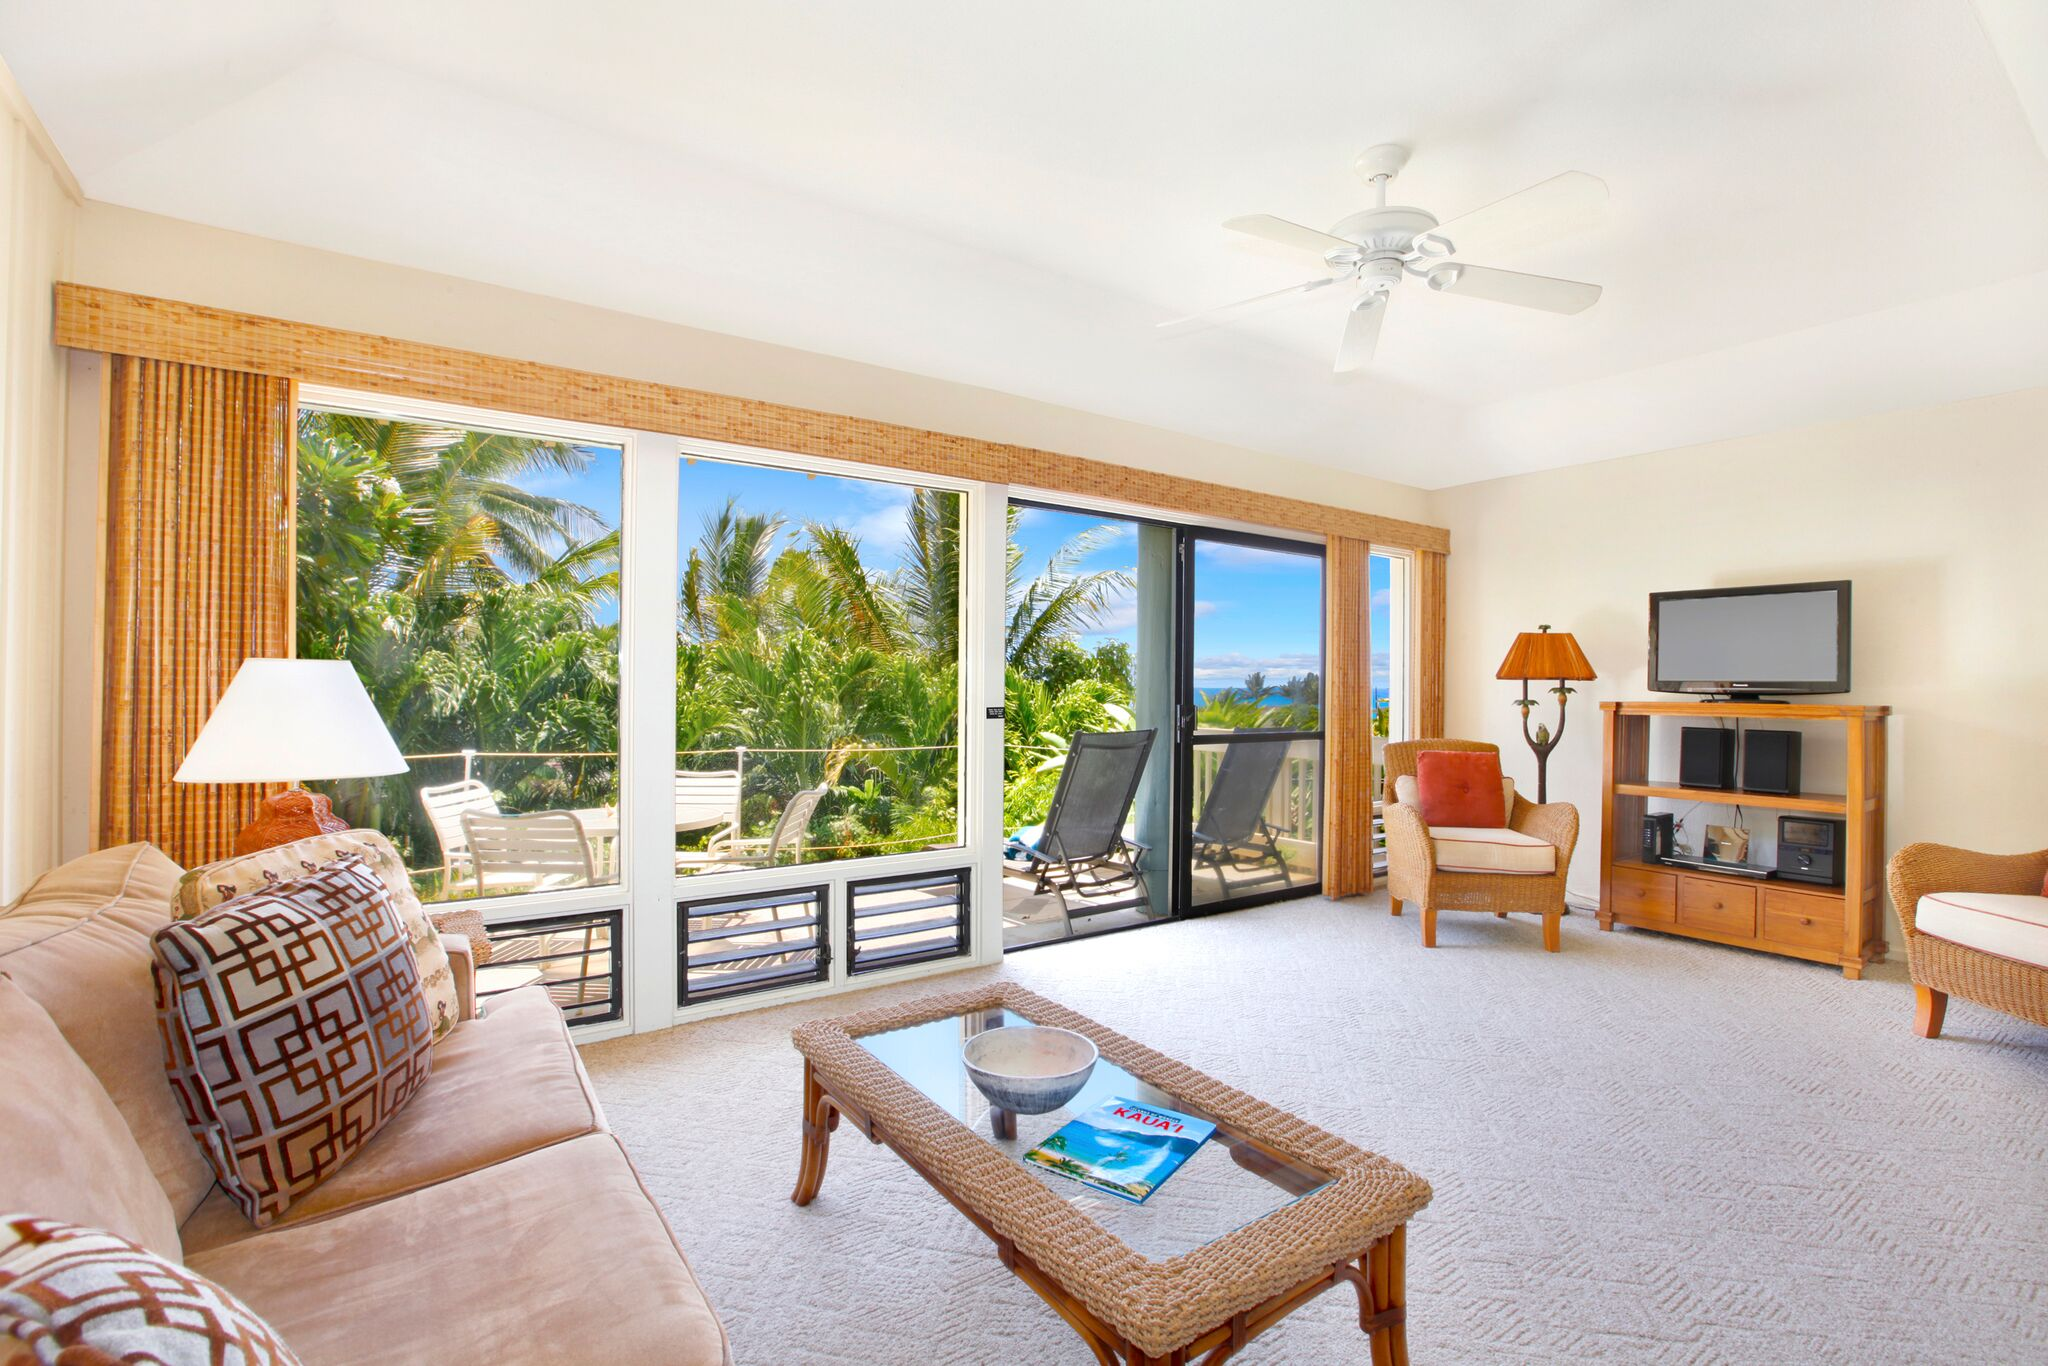 Property Image 1 - Gorgeous Garden View Retreat within Minutes from Stunning Poipu Beach